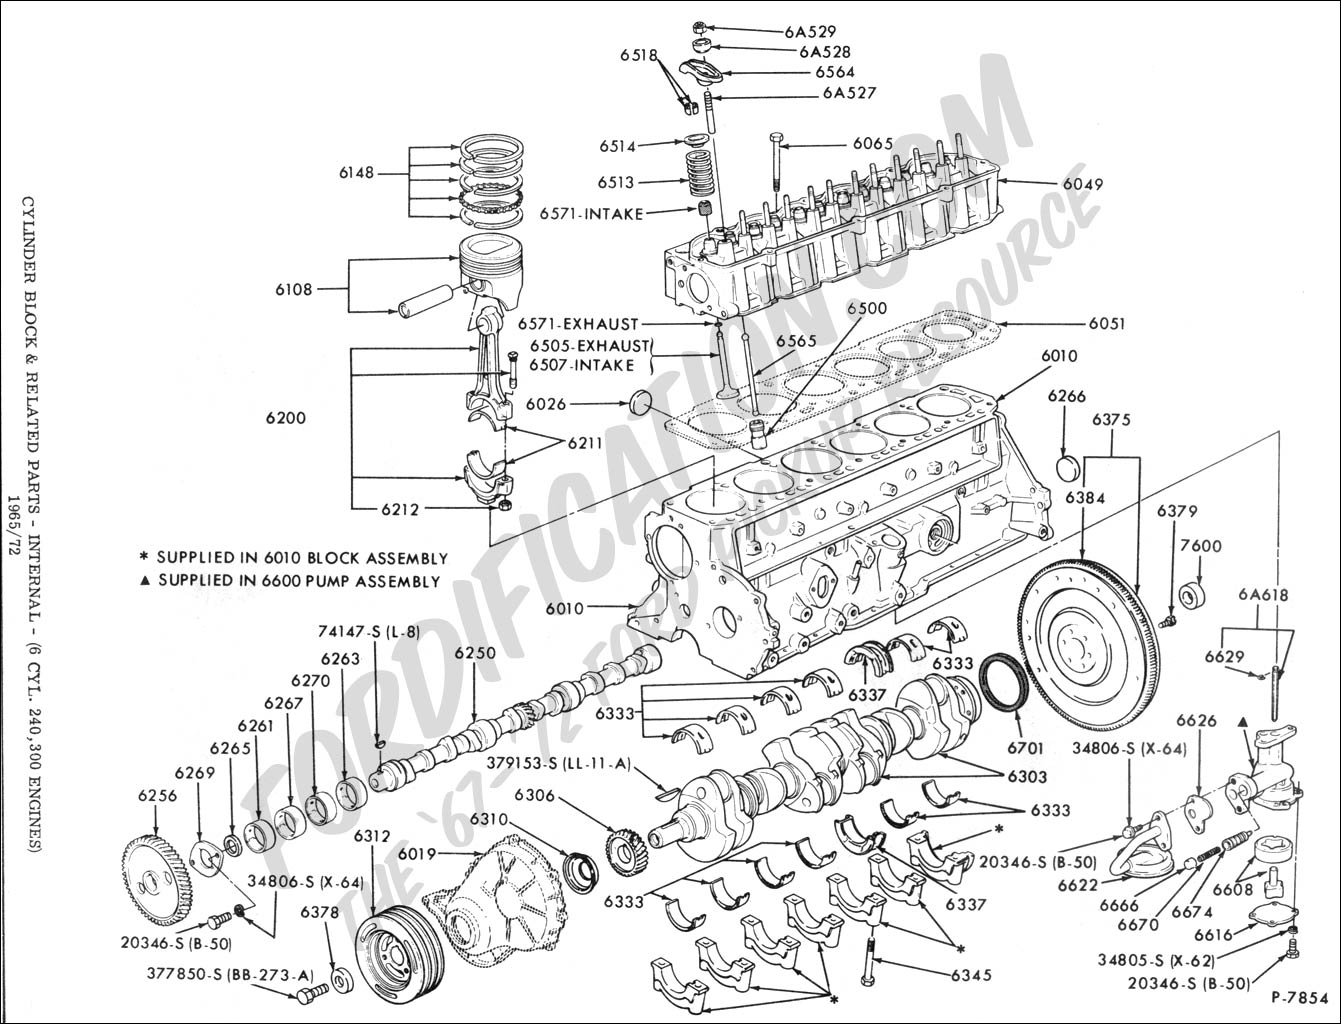 1966 Mustang 289 Wiring Diagram on 1968 mustang wiring diagram vacuum schematics